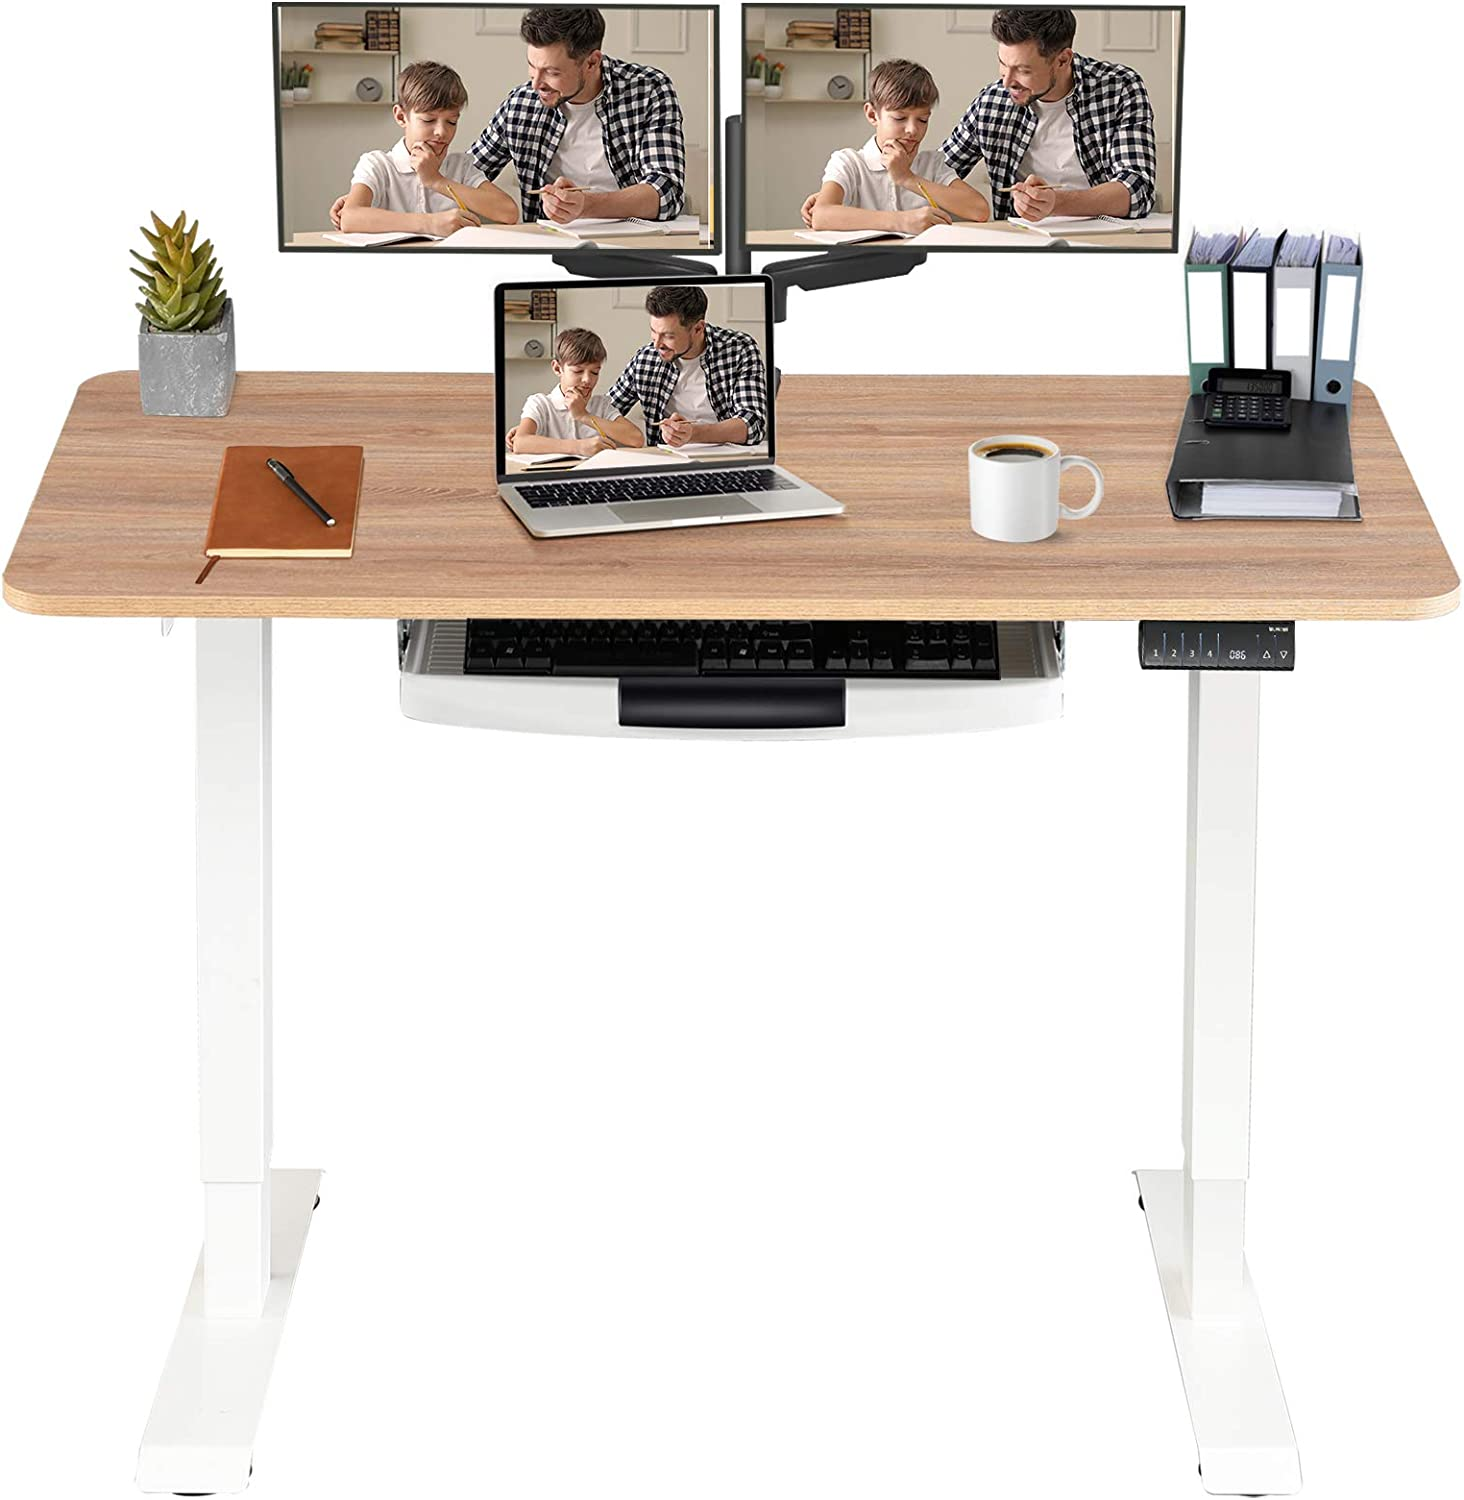 MONOMI Electric Height Adjustable Standing Desk, 48 x 24 inches Stand up Desk Workstation, Sit Stand Home Office Table with 4 Programmable Preset Controller,Oak